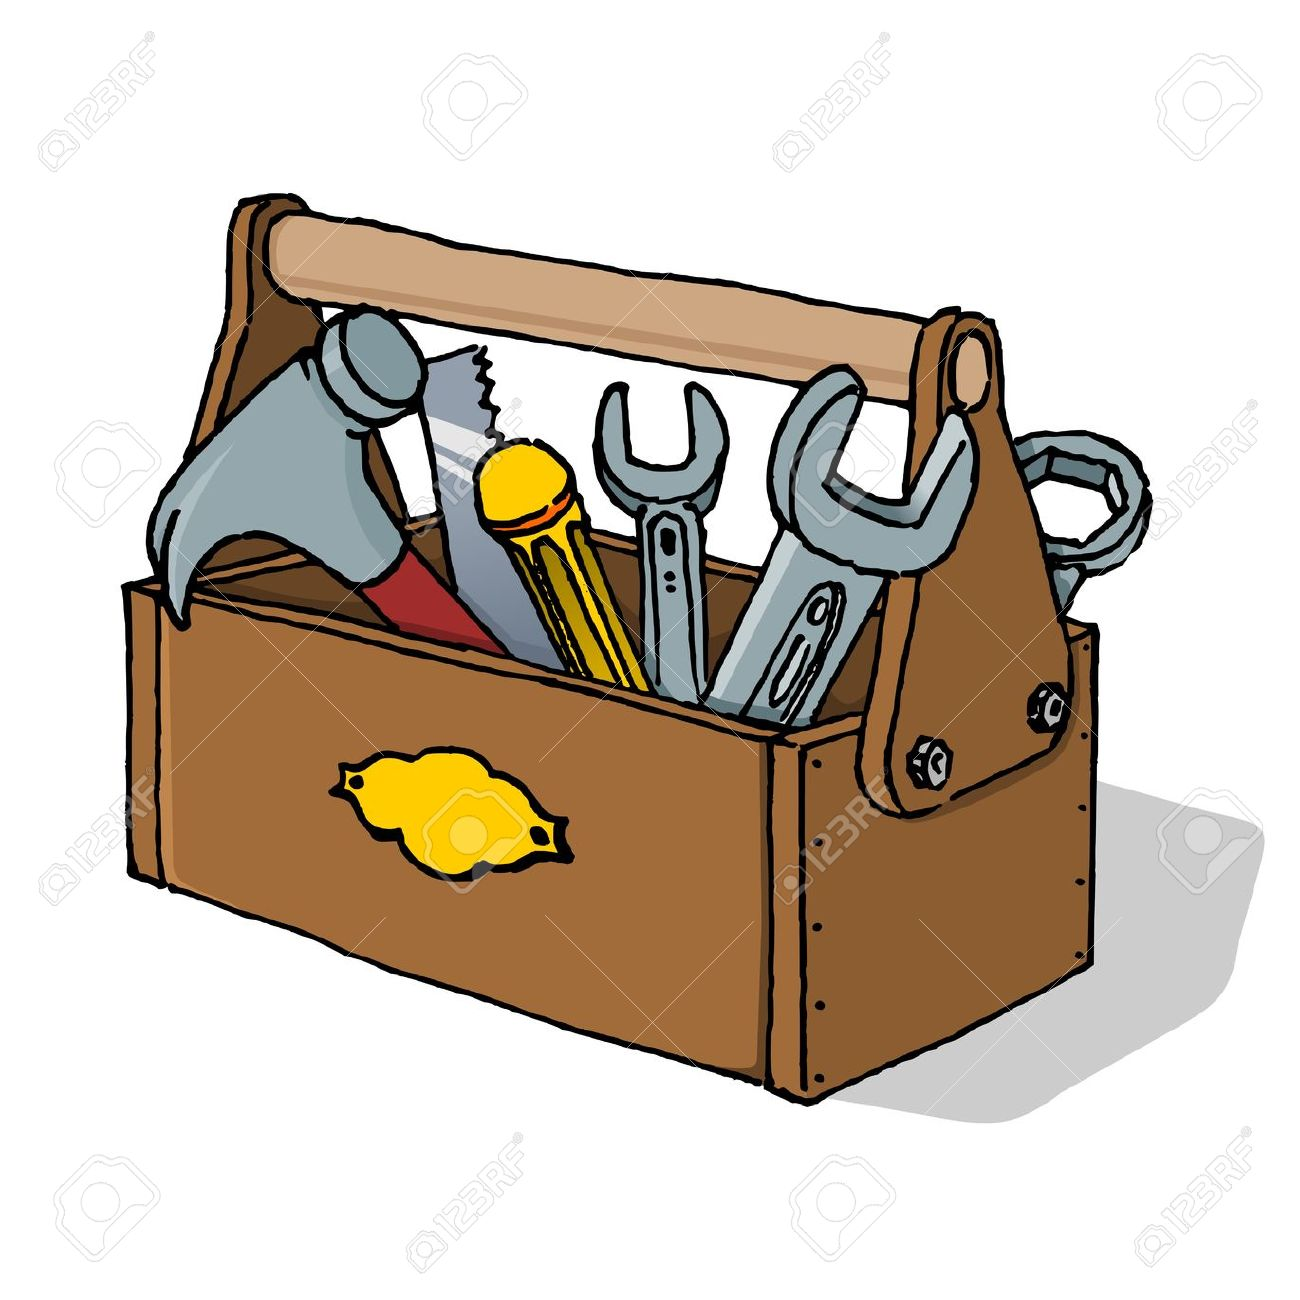 Wood Toolbox Clipart |...